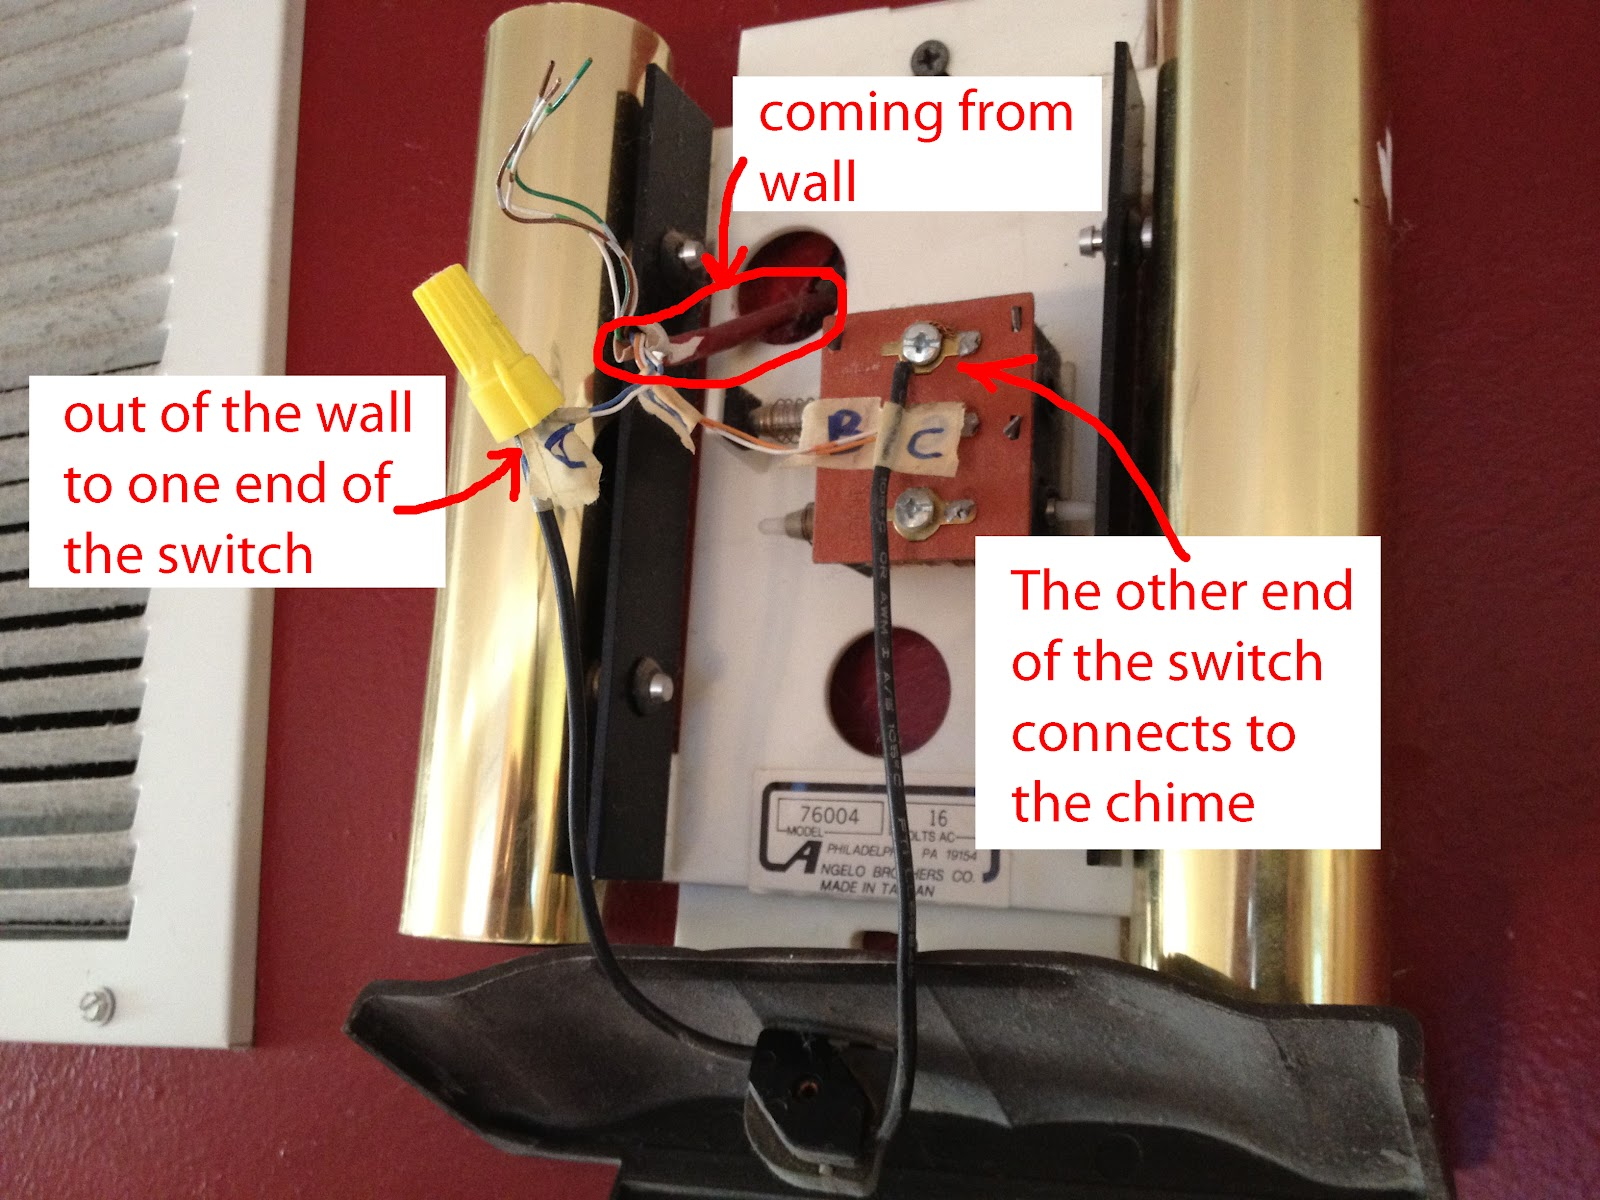 How To Install An On Off Switch Your Doorbell Chime Share Electrical Wiring For The Easiest Way Is Simply Use A Wire Nut Connect If You Really Wanted Be Cute Could Solder Them And Shrink Tubing